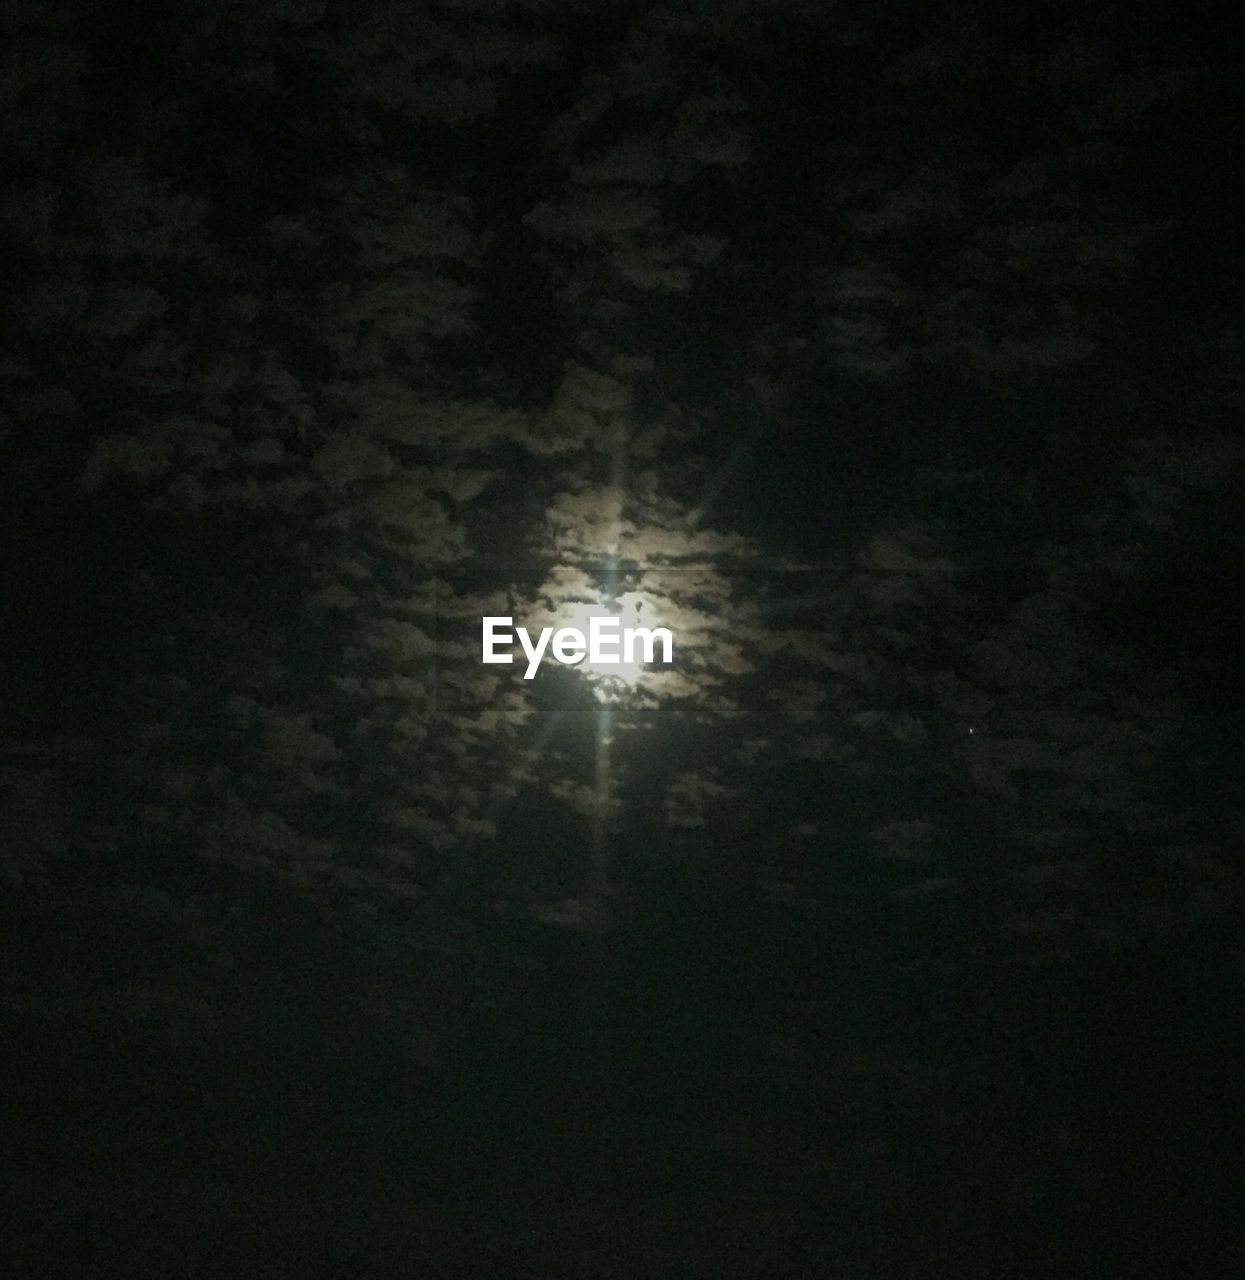 sky, night, moon, low angle view, full moon, moonlight, beauty in nature, no people, cloud - sky, nature, tranquility, astronomy, scenics - nature, dark, glowing, outdoors, space, tranquil scene, illuminated, planetary moon, eclipse